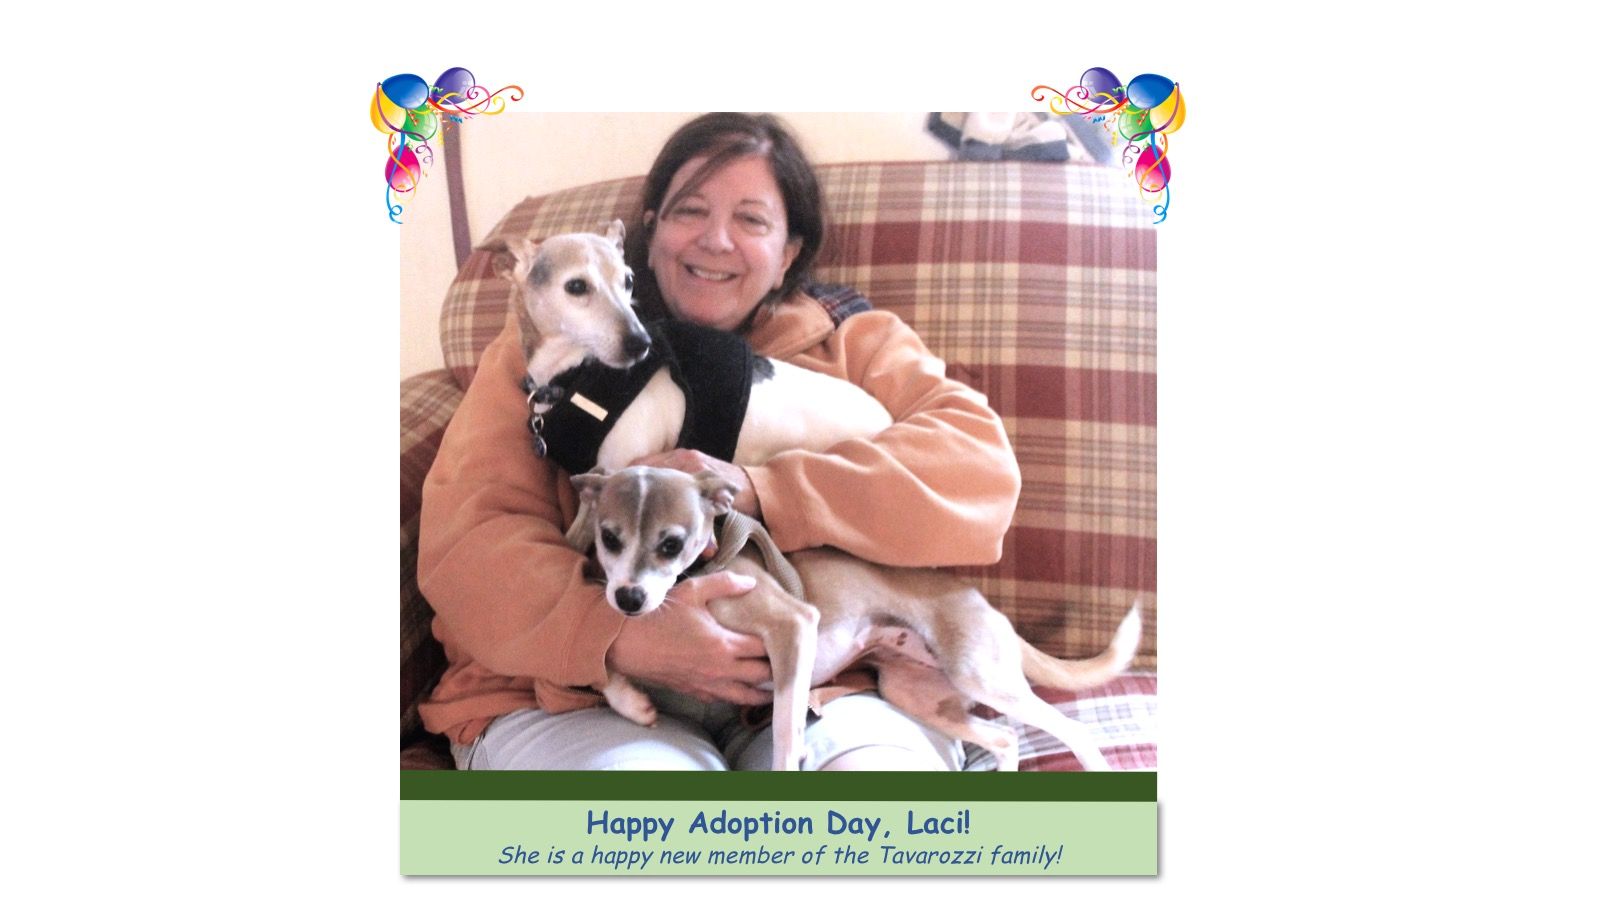 Laci_Adoption_photo.jpg